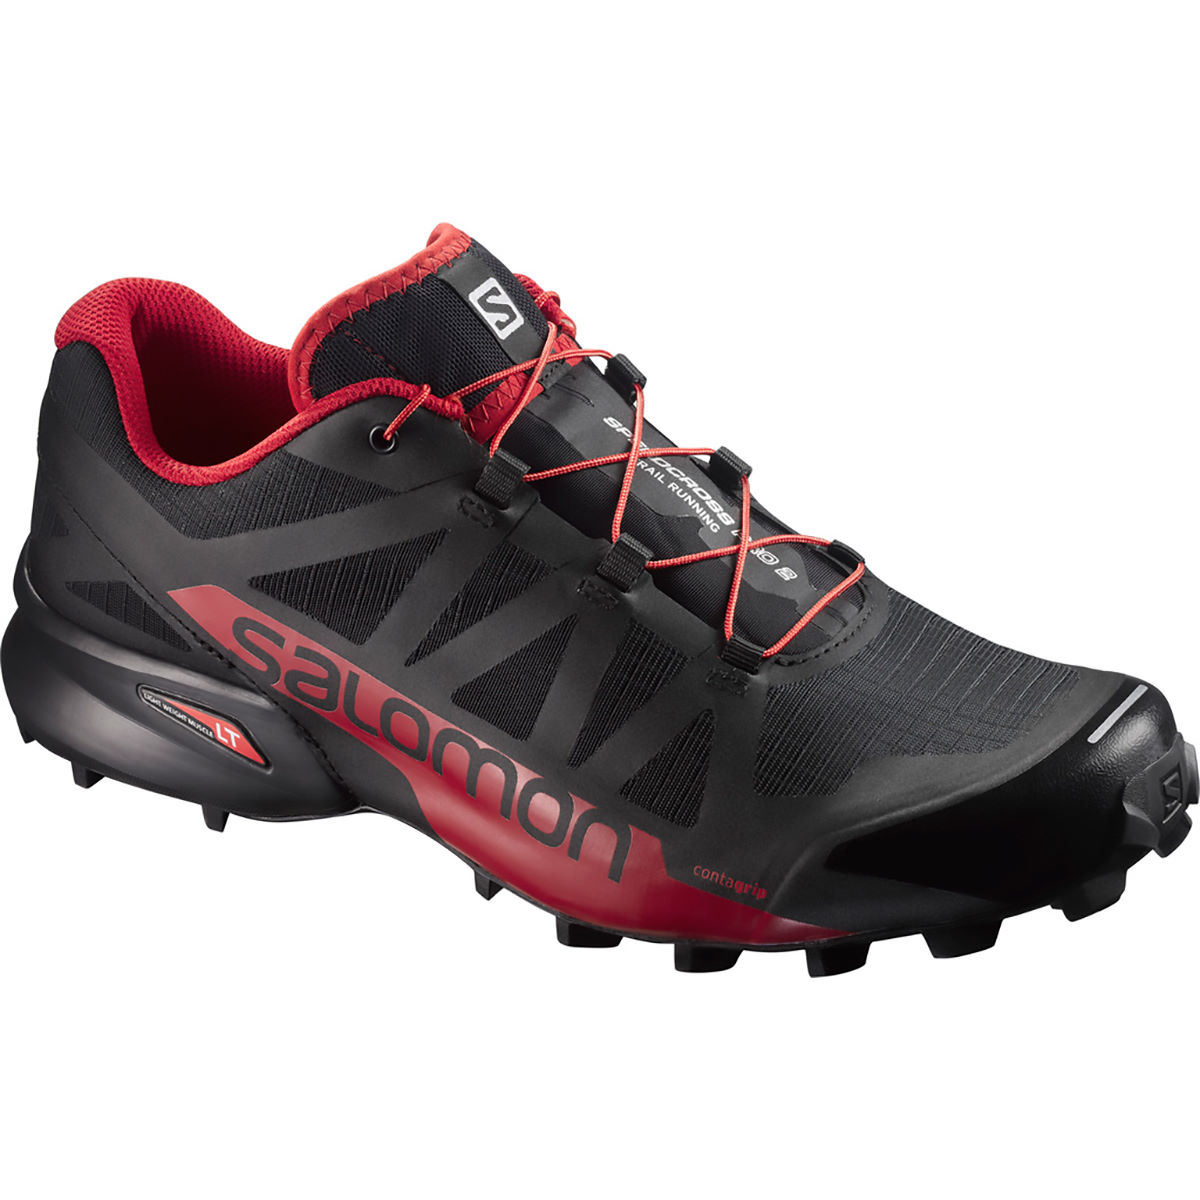 Salomon - Speedcross Pro 2 Shoes - 8.5 black/barbadoes cher